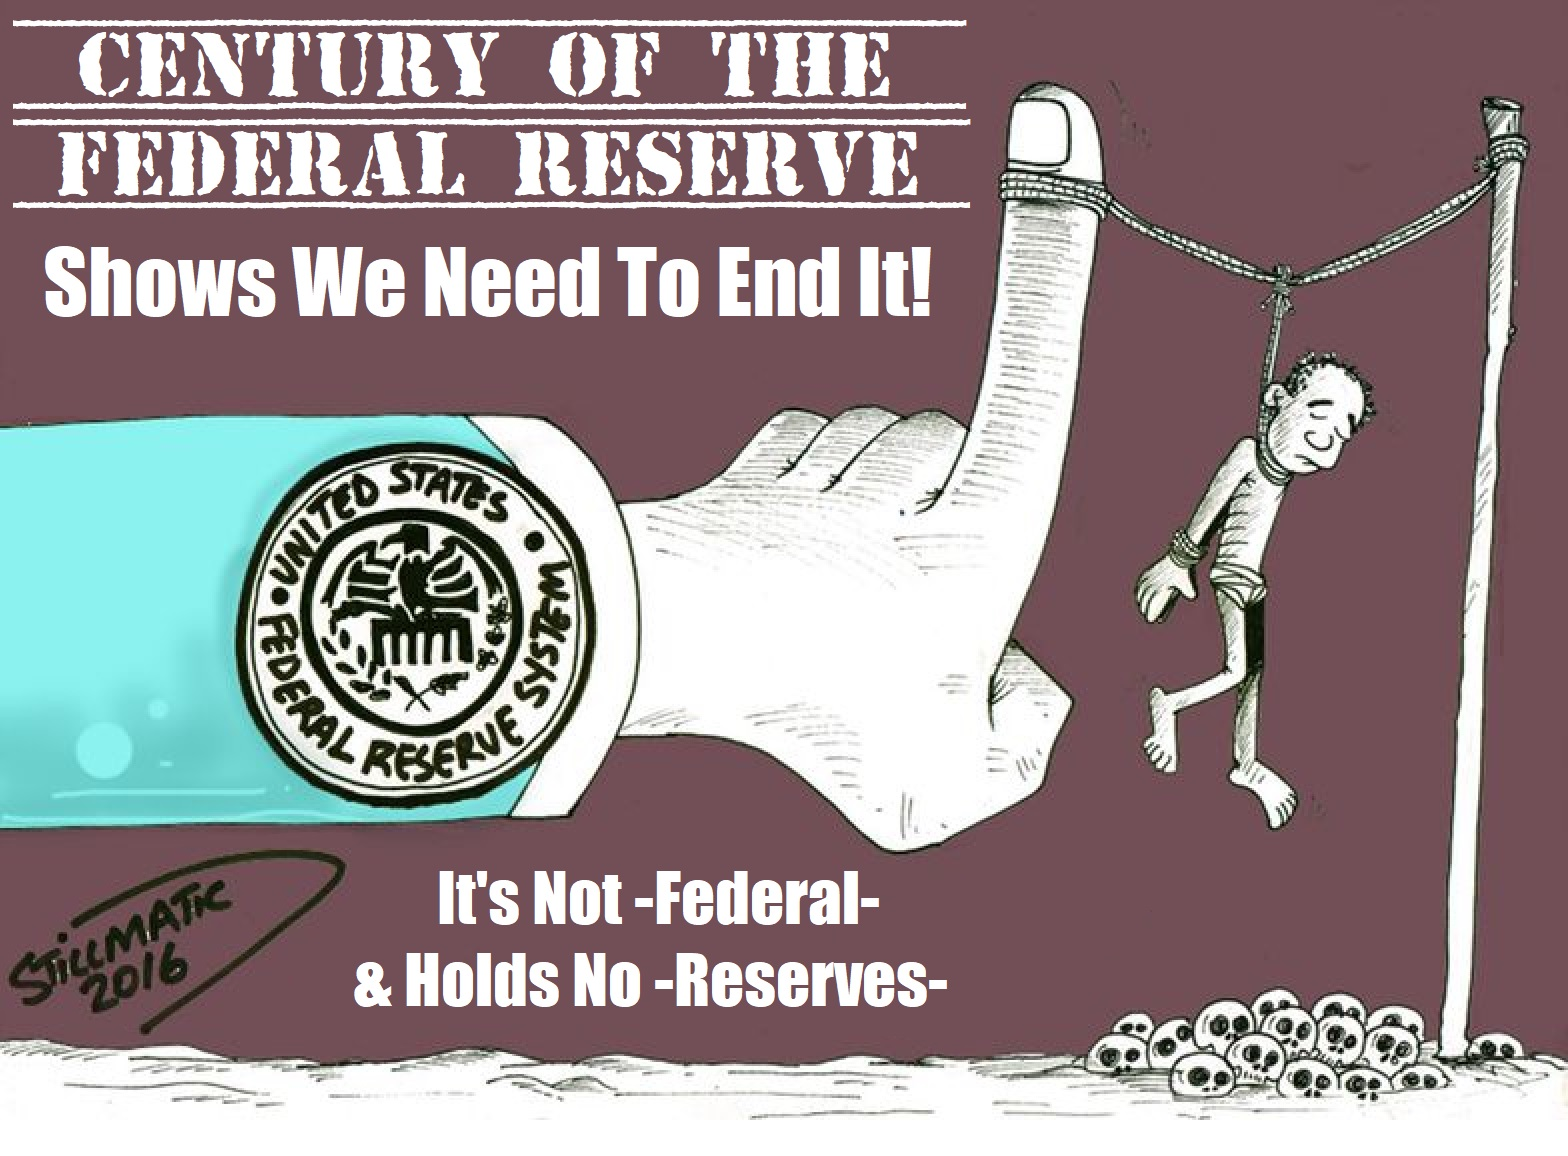 Let's End The Federal Reserve!